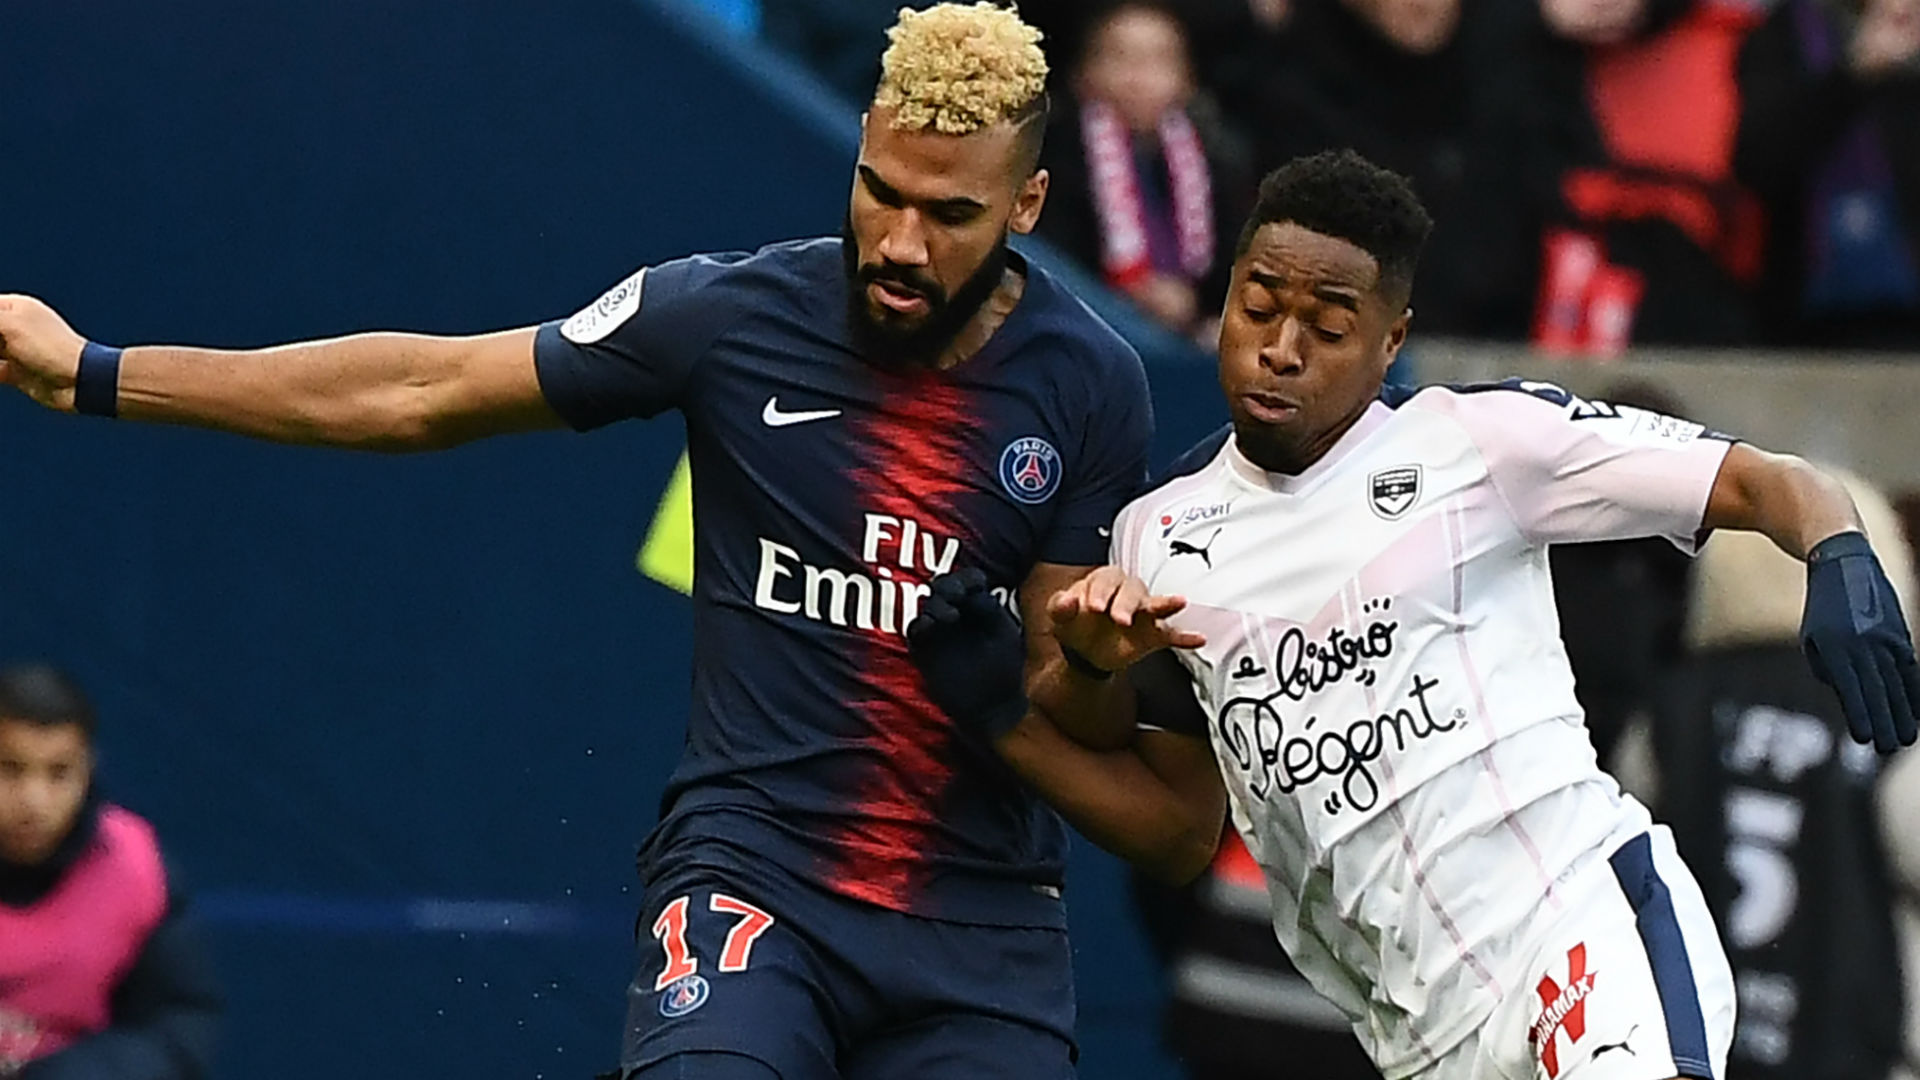 PSG's Choupo-Moting scored twice in Cameroon's victory over Comoros last week (Agency Photo)